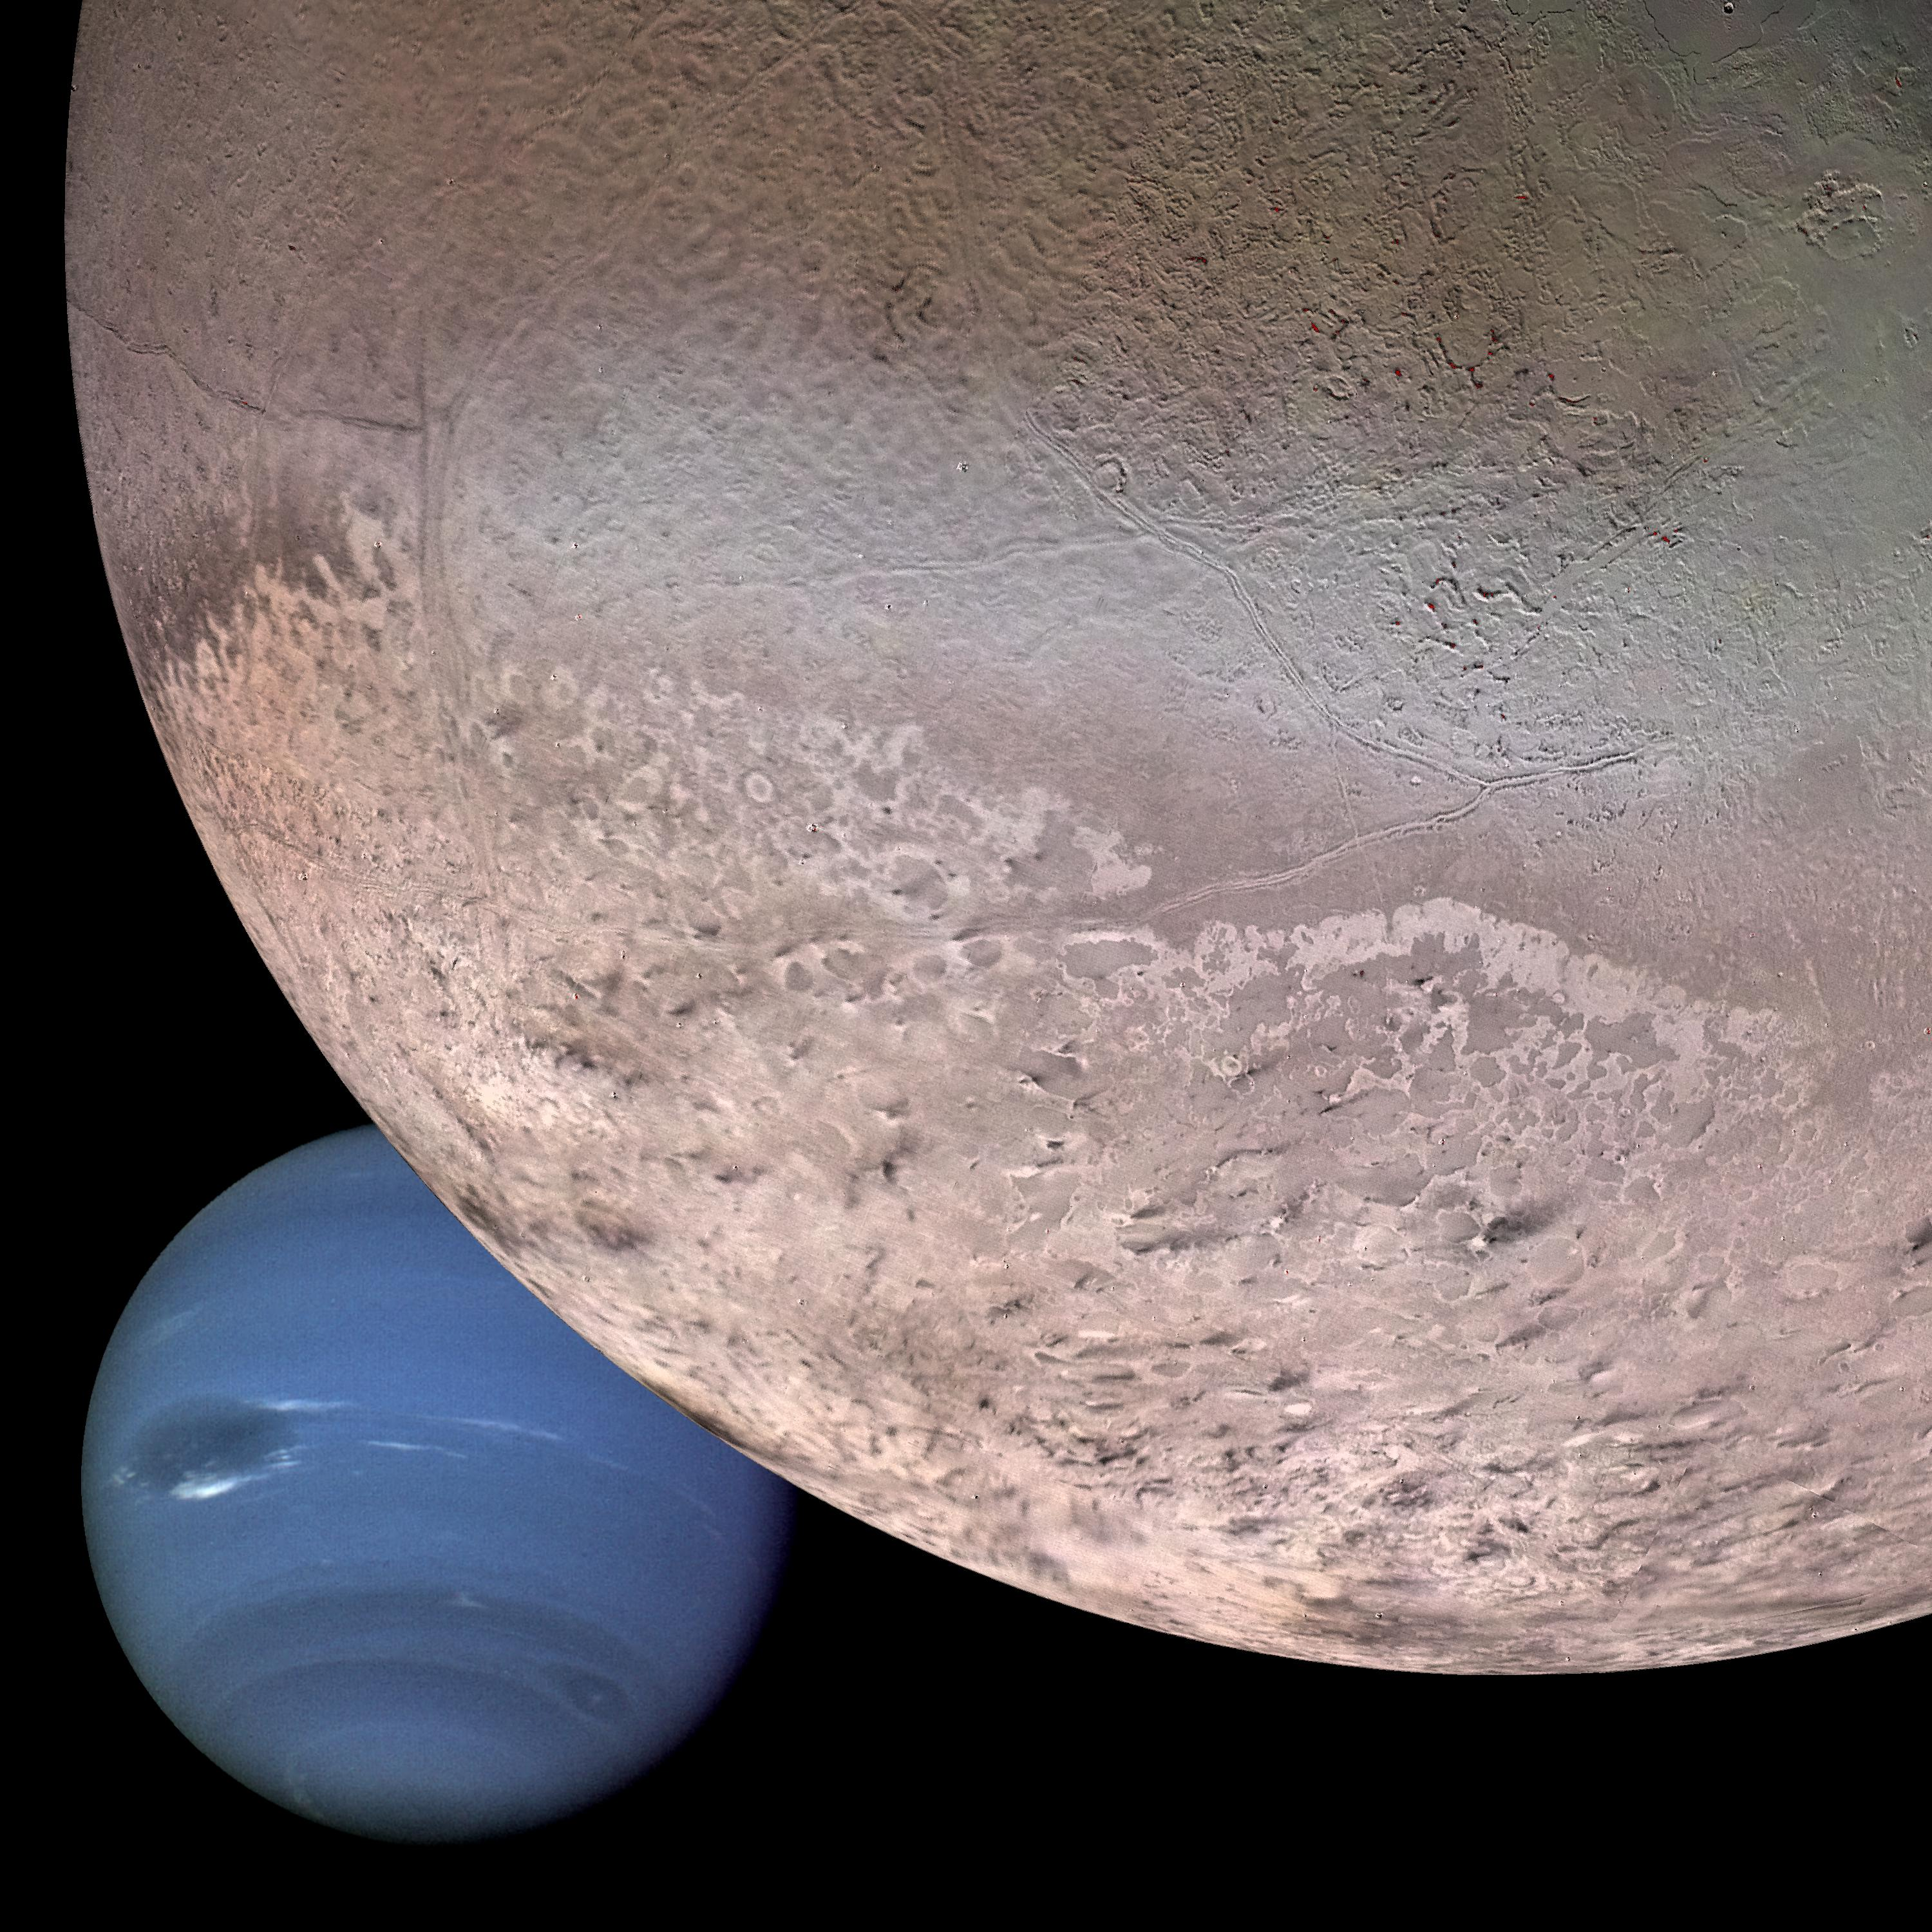 This computer generated montage shows Neptune as it would appear from a spacecraft approaching Triton, Neptune's largest moon at 2706 km (1683 mi) in diameter.